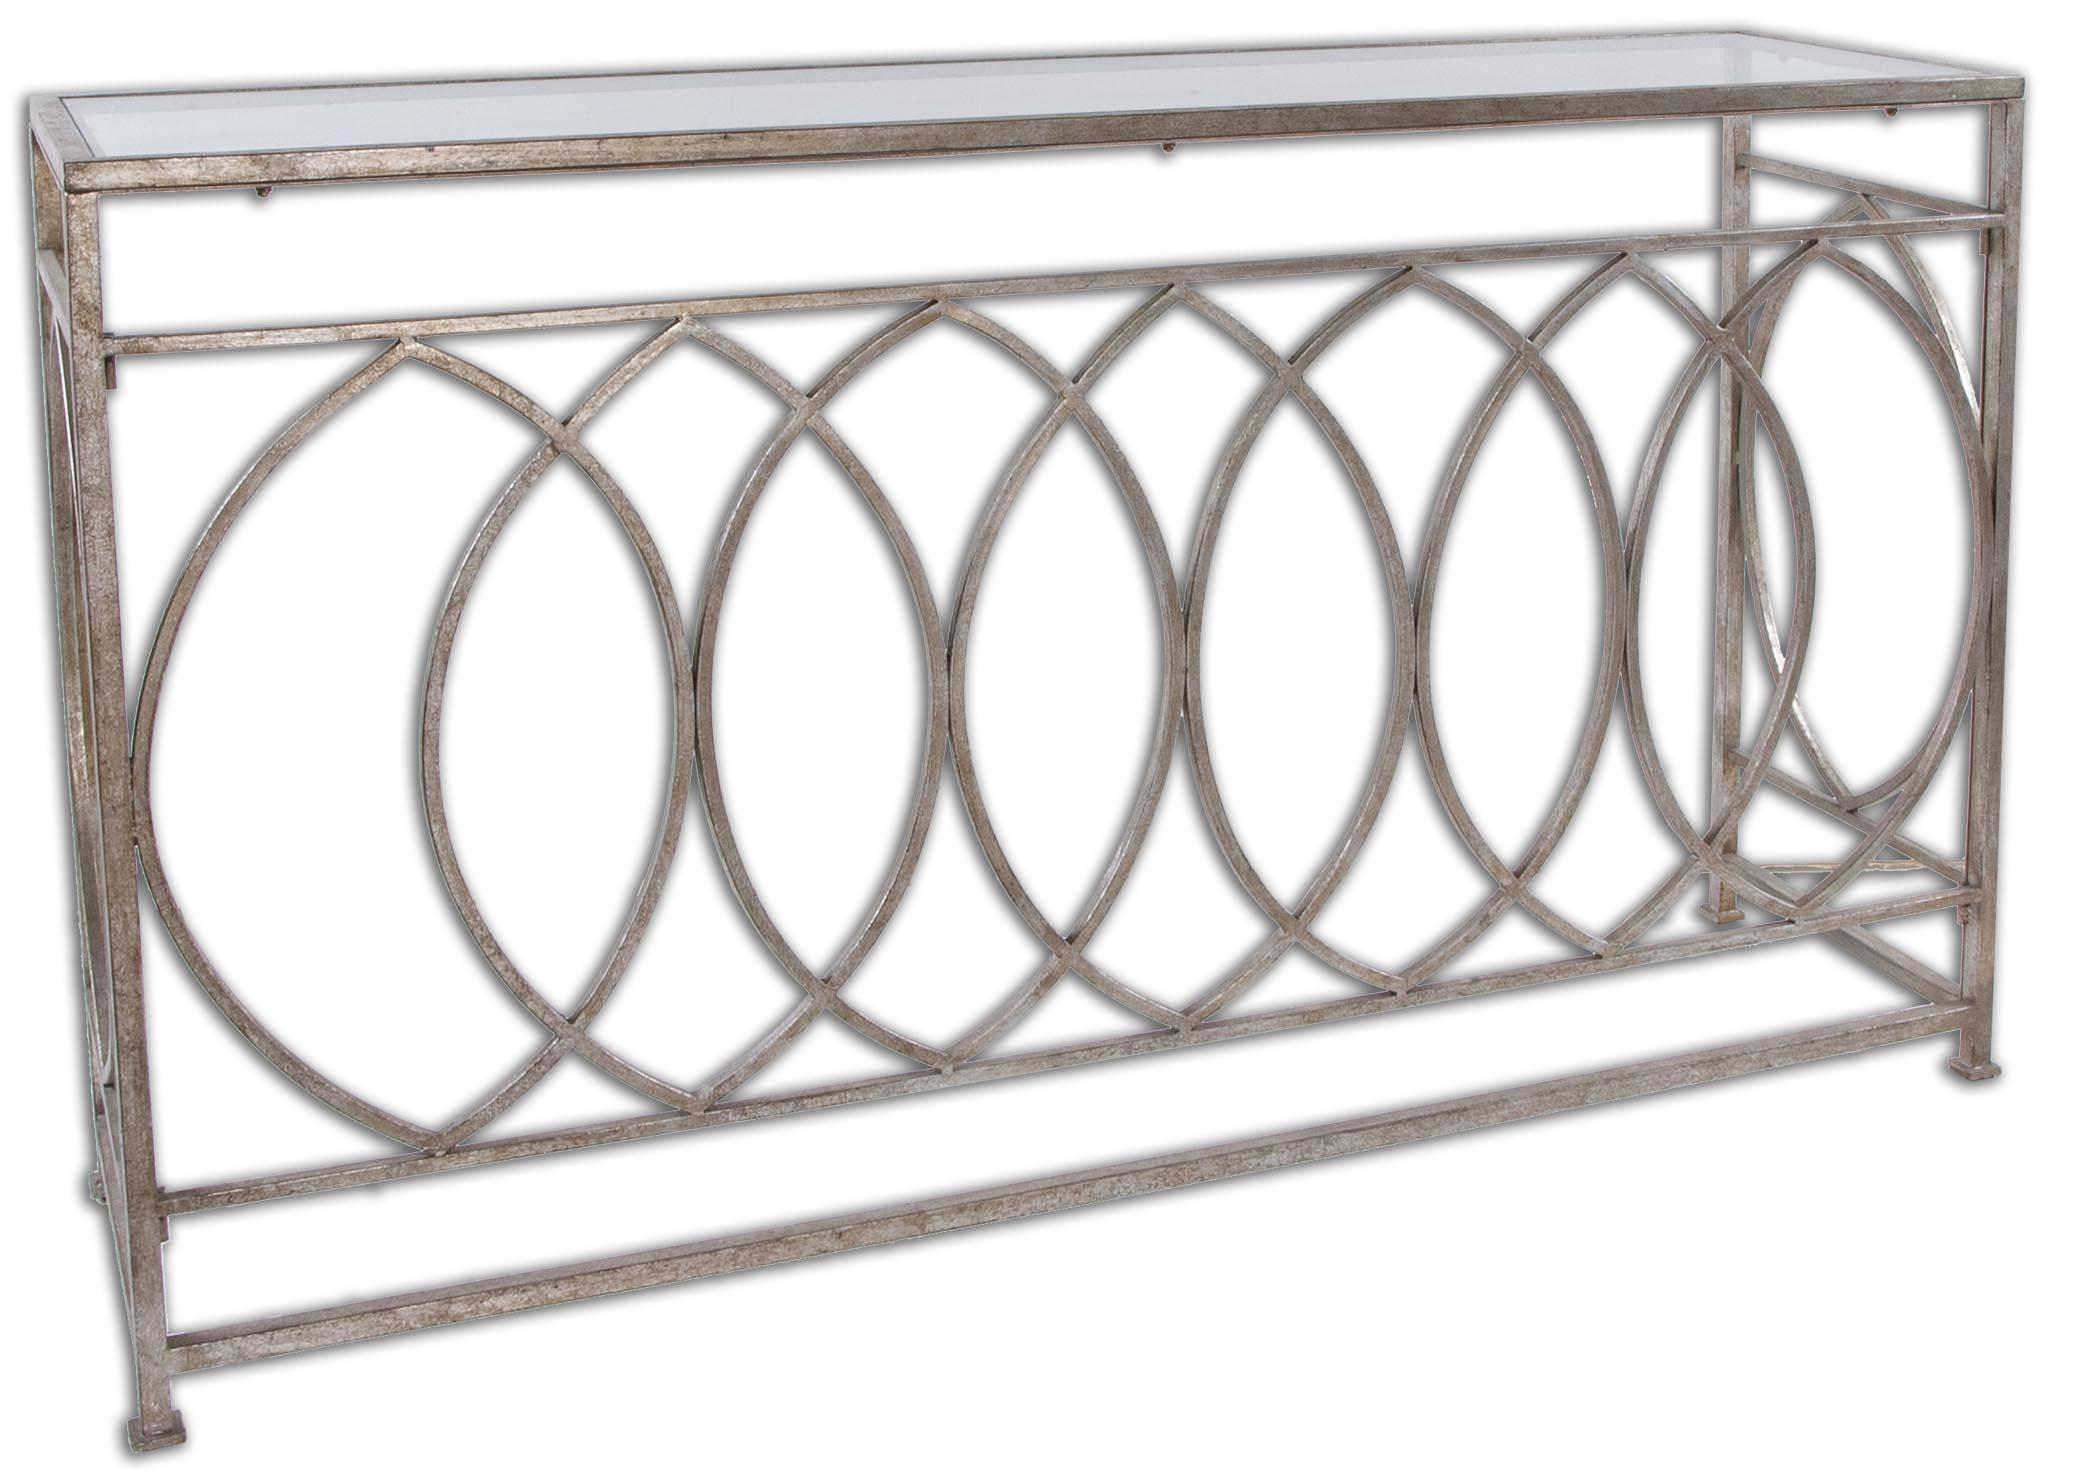 Uttermost Accent Furniture Aniya Glass Top Console Table - Item Number: 24306